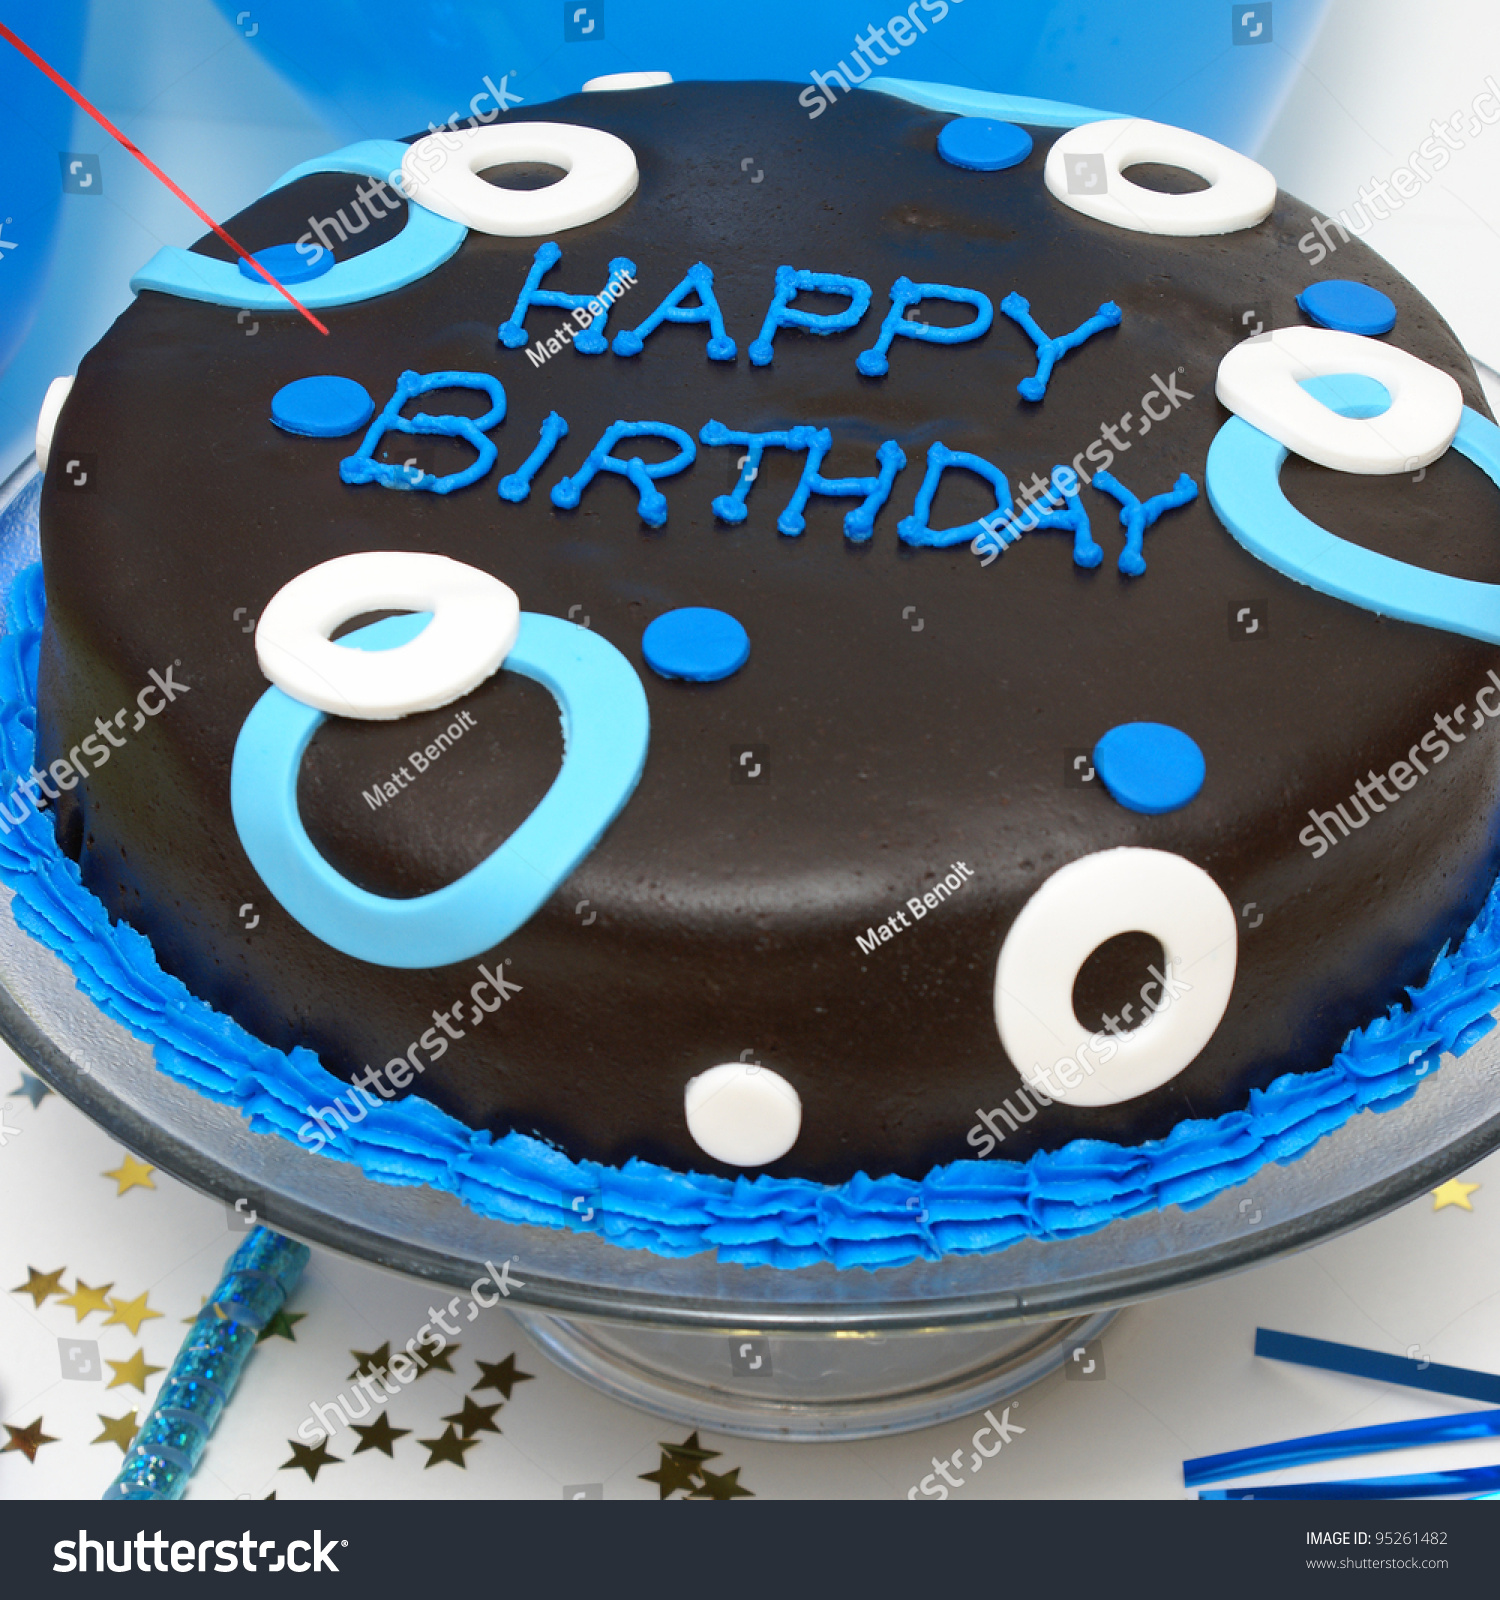 Birthday Cake For Best Friend Boy Image Inspiration of Cake and